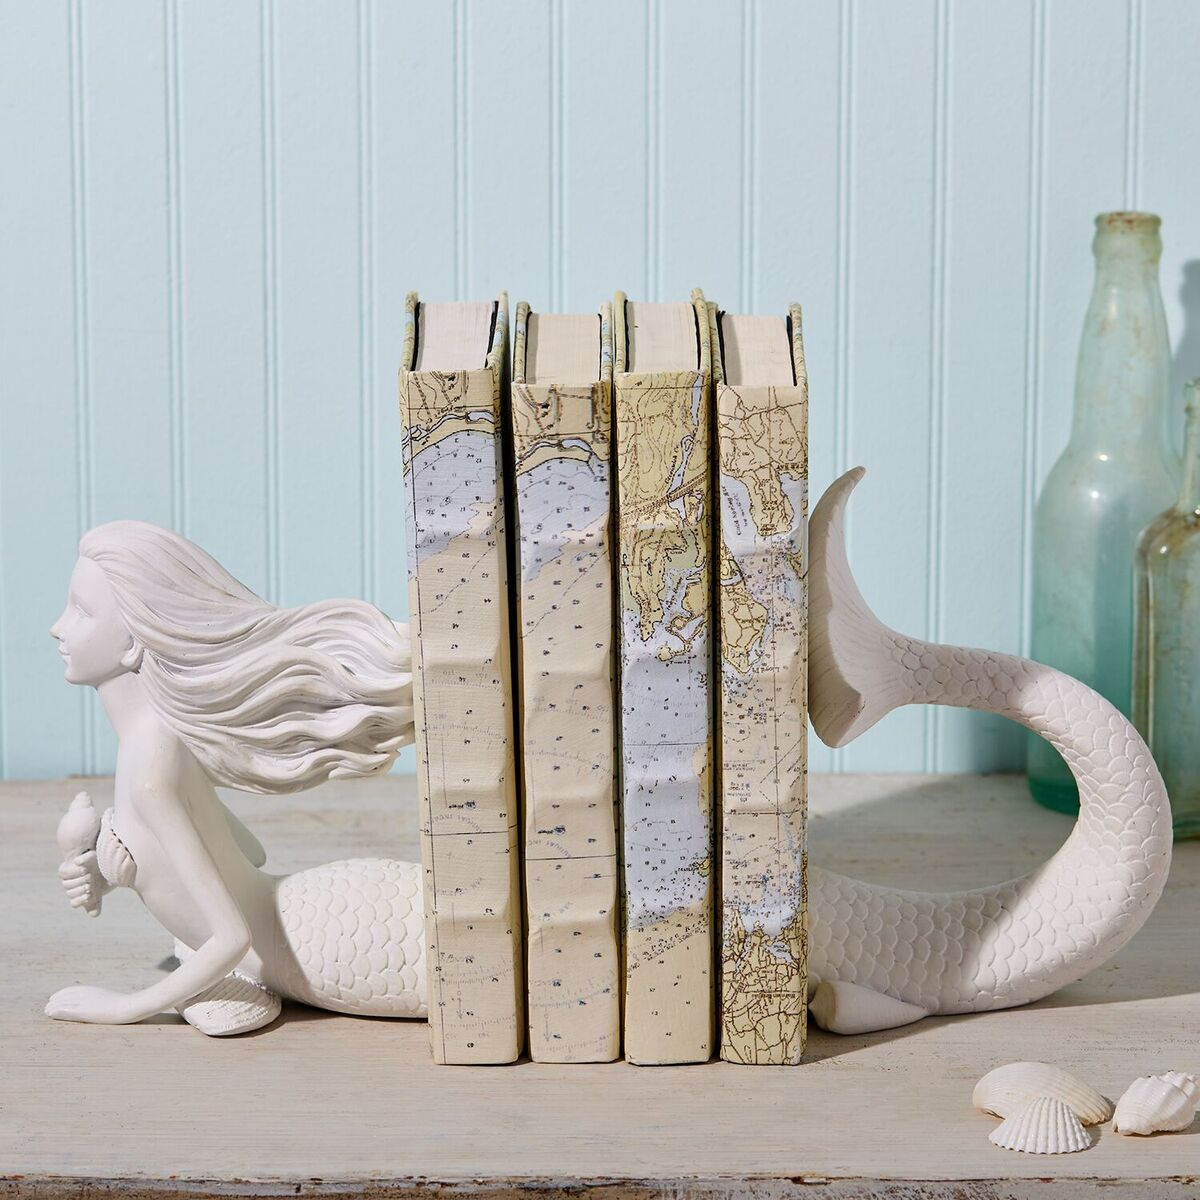 Stunning white mermaid bookends tutti decor ltd for Home decor uk ltd